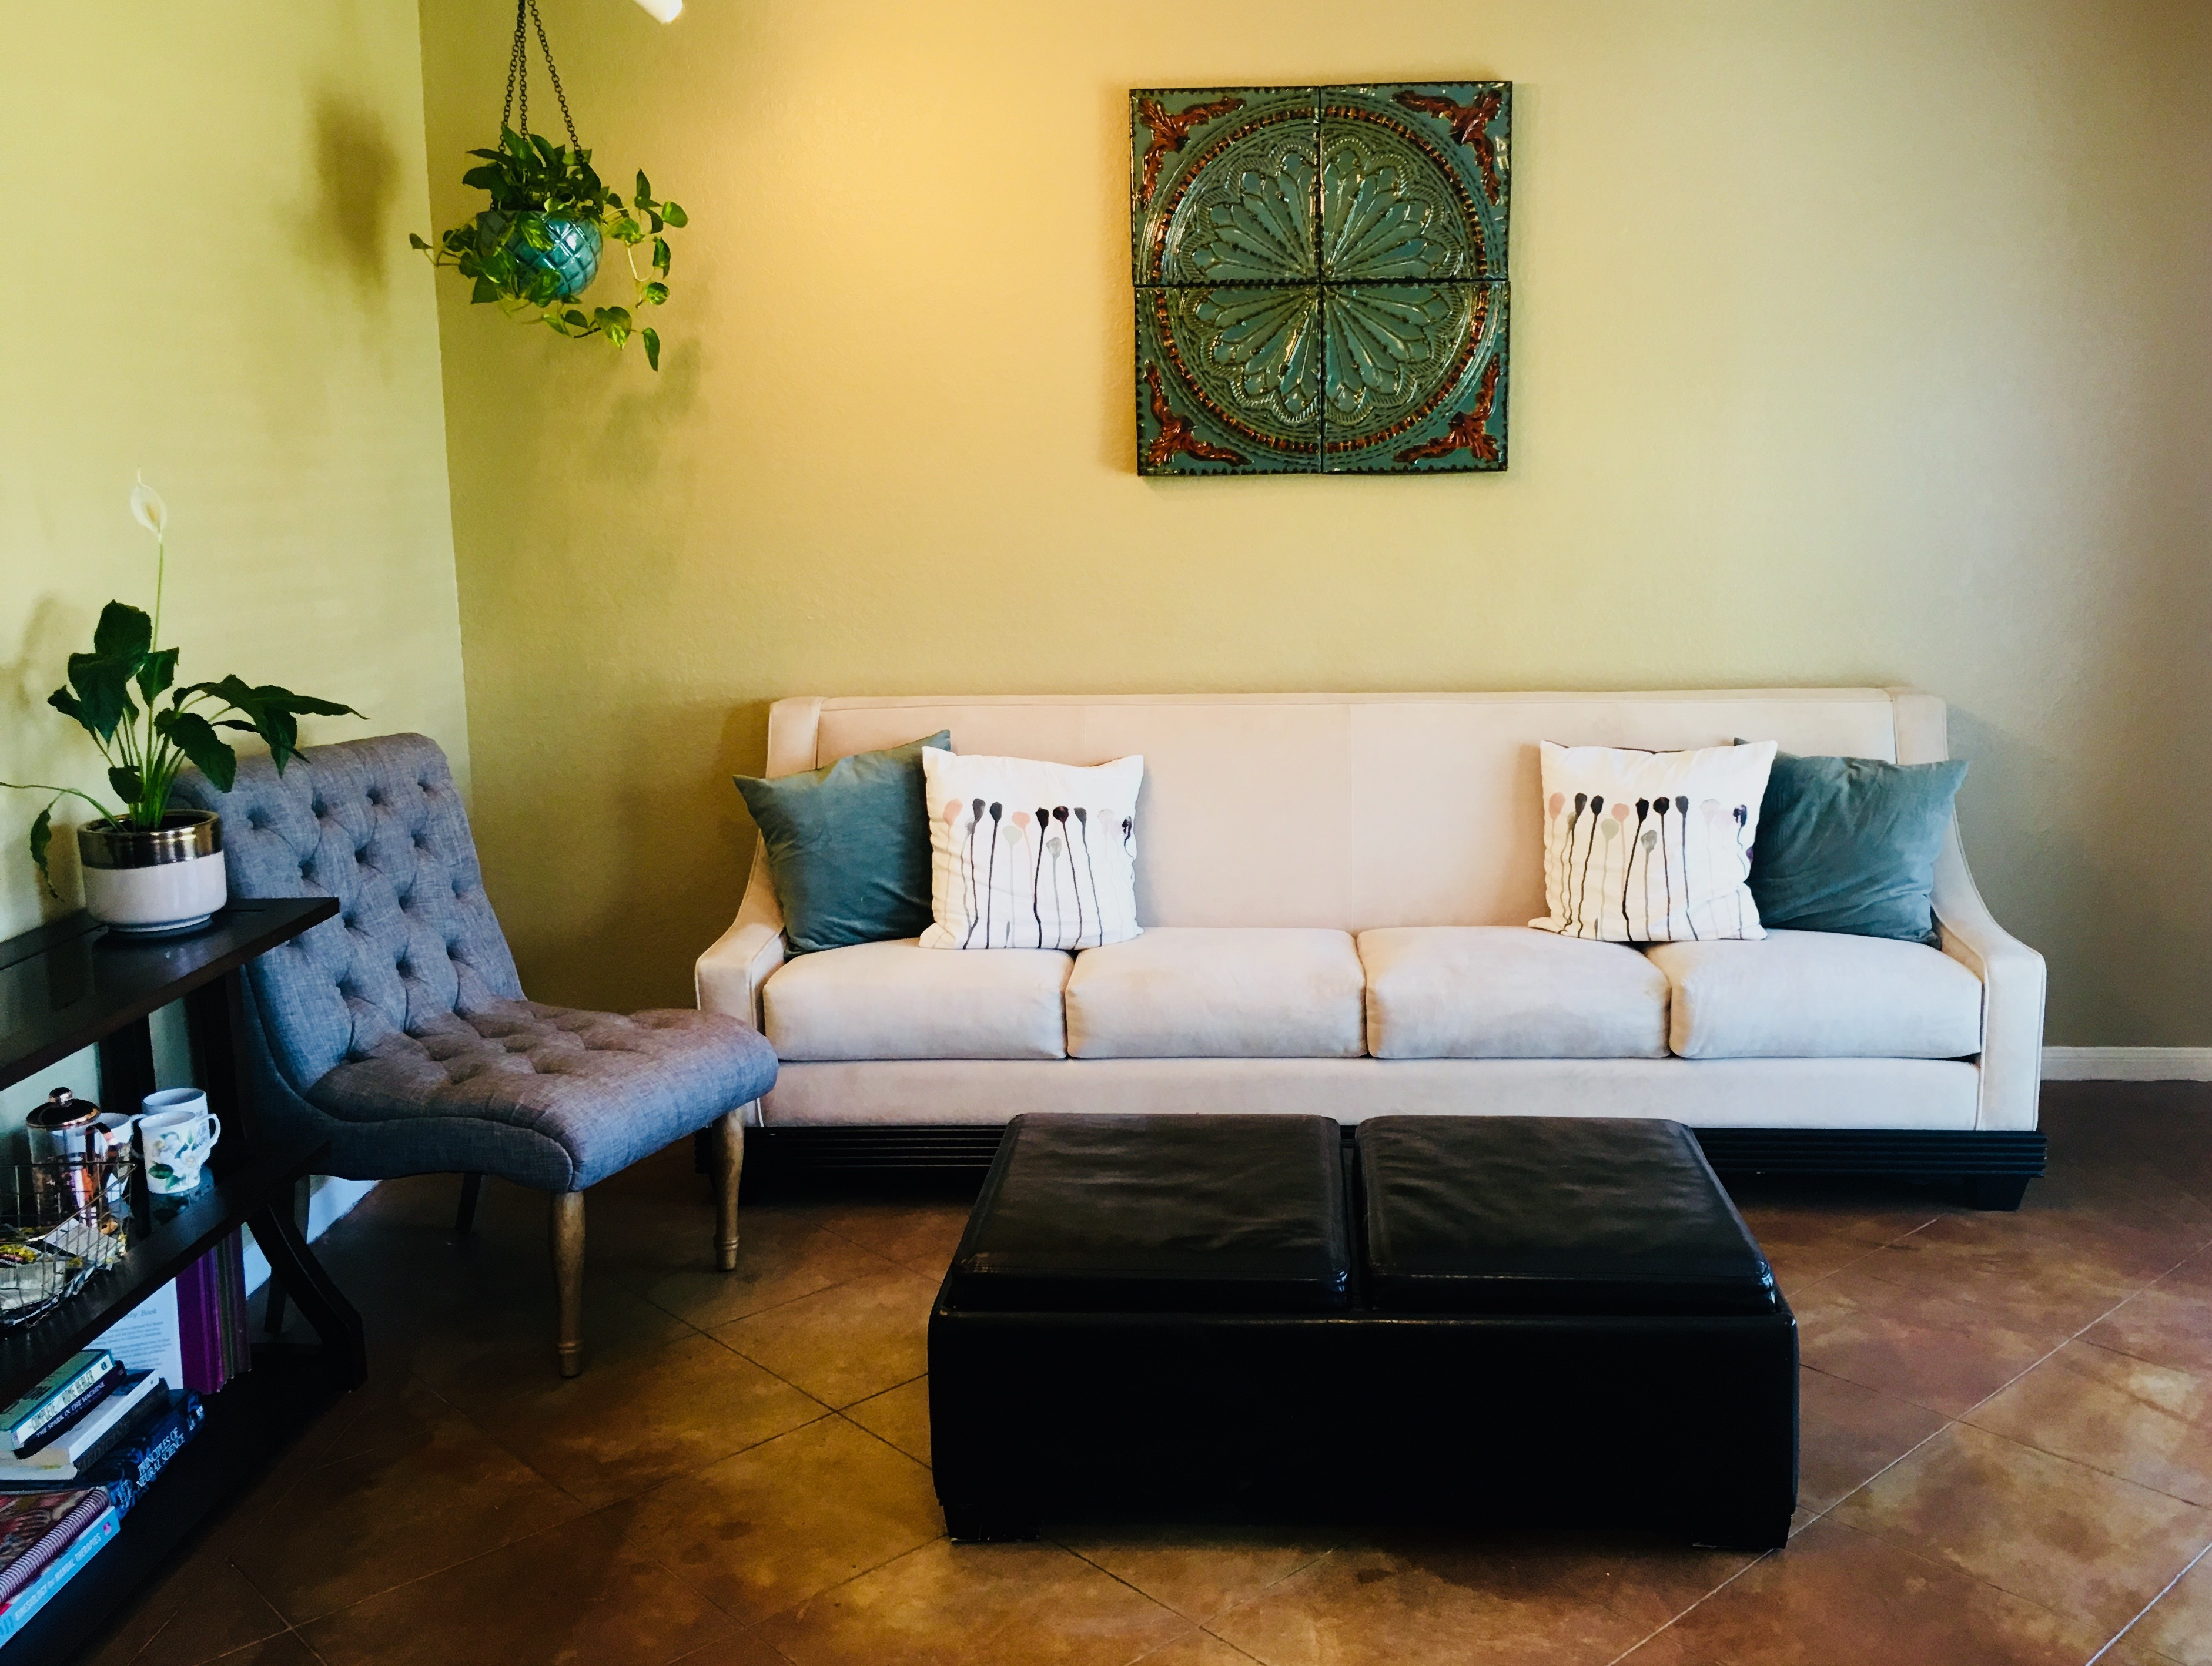 Massage Permanent Makeup Marble Falls Texas Relaxation Station